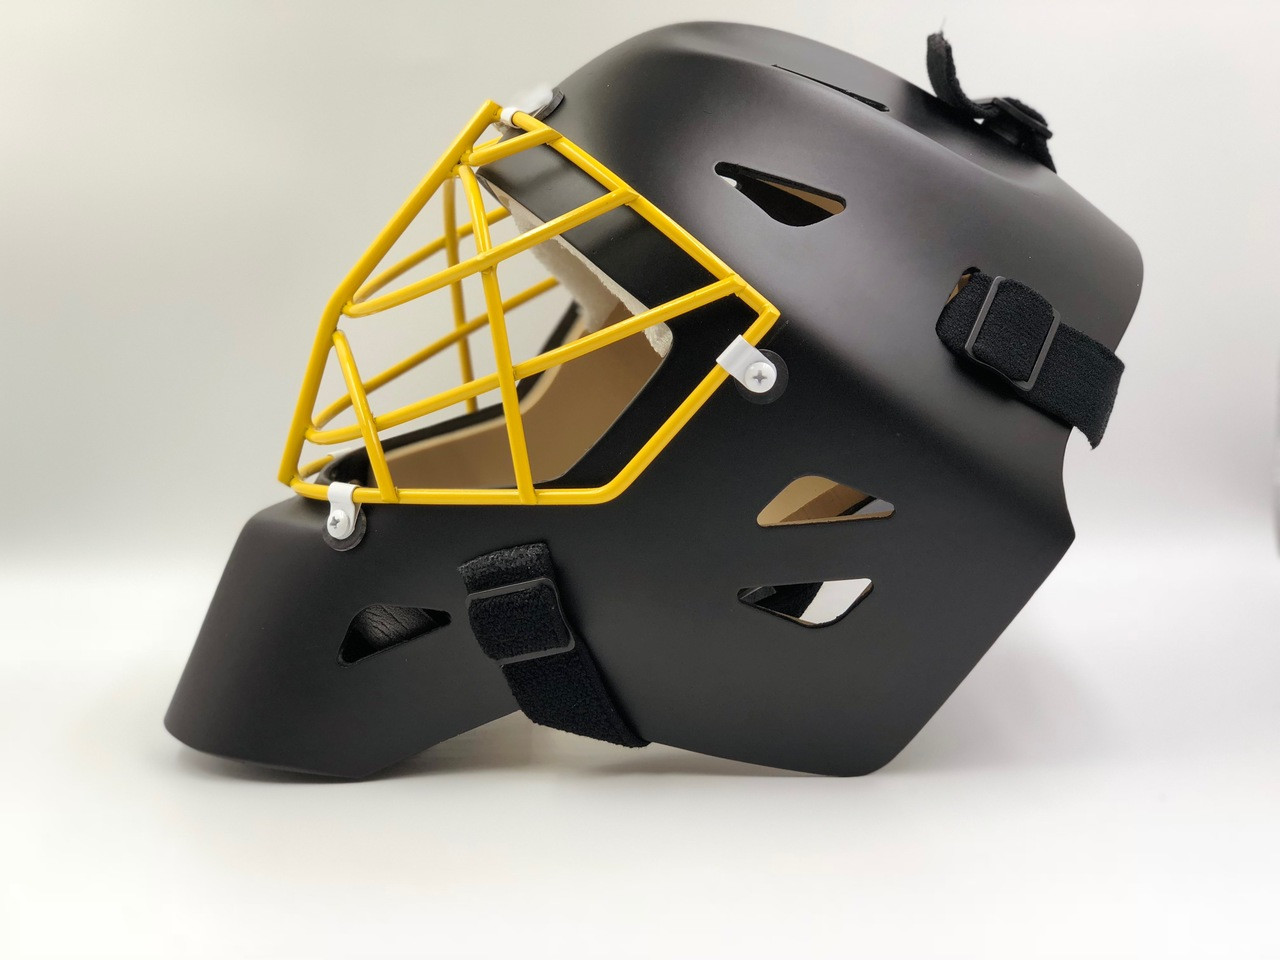 OTNY X1 Pro Goalie Mask with Non-Certified Cat-Eye Cage